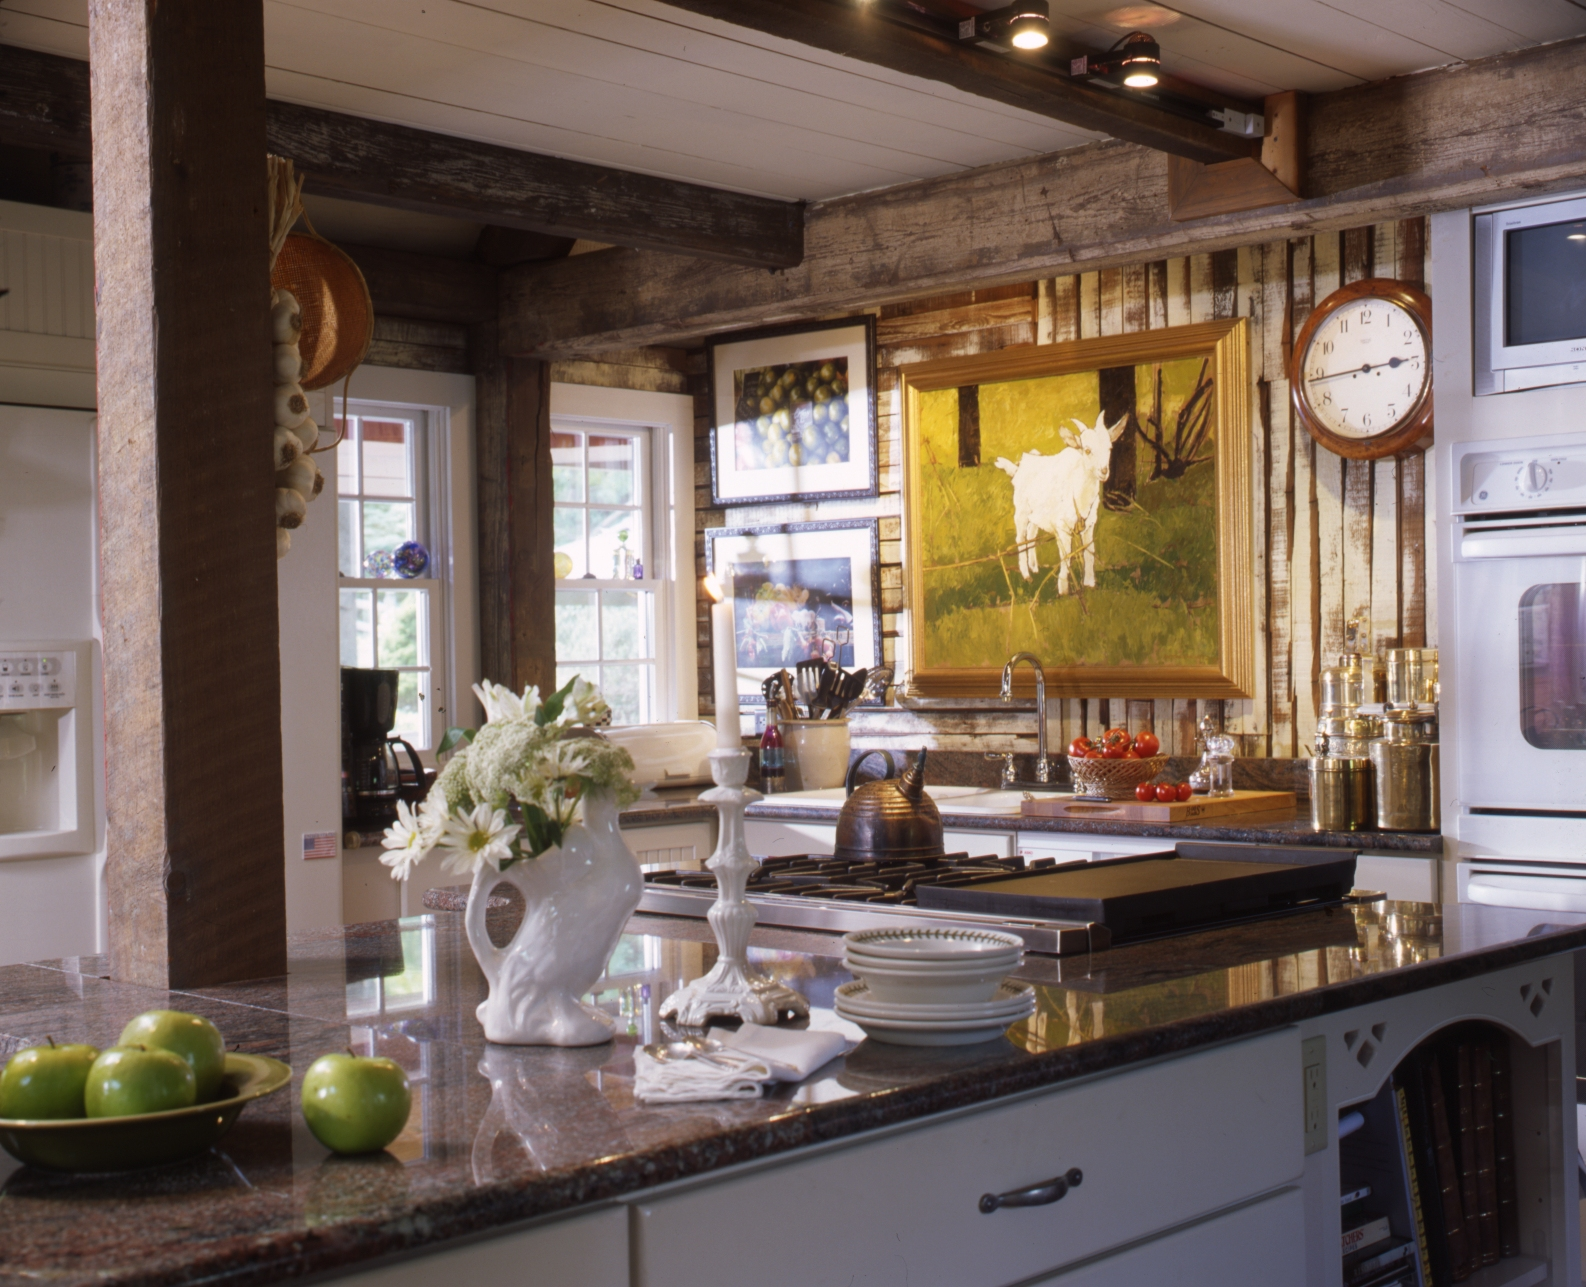 French country kitchen images